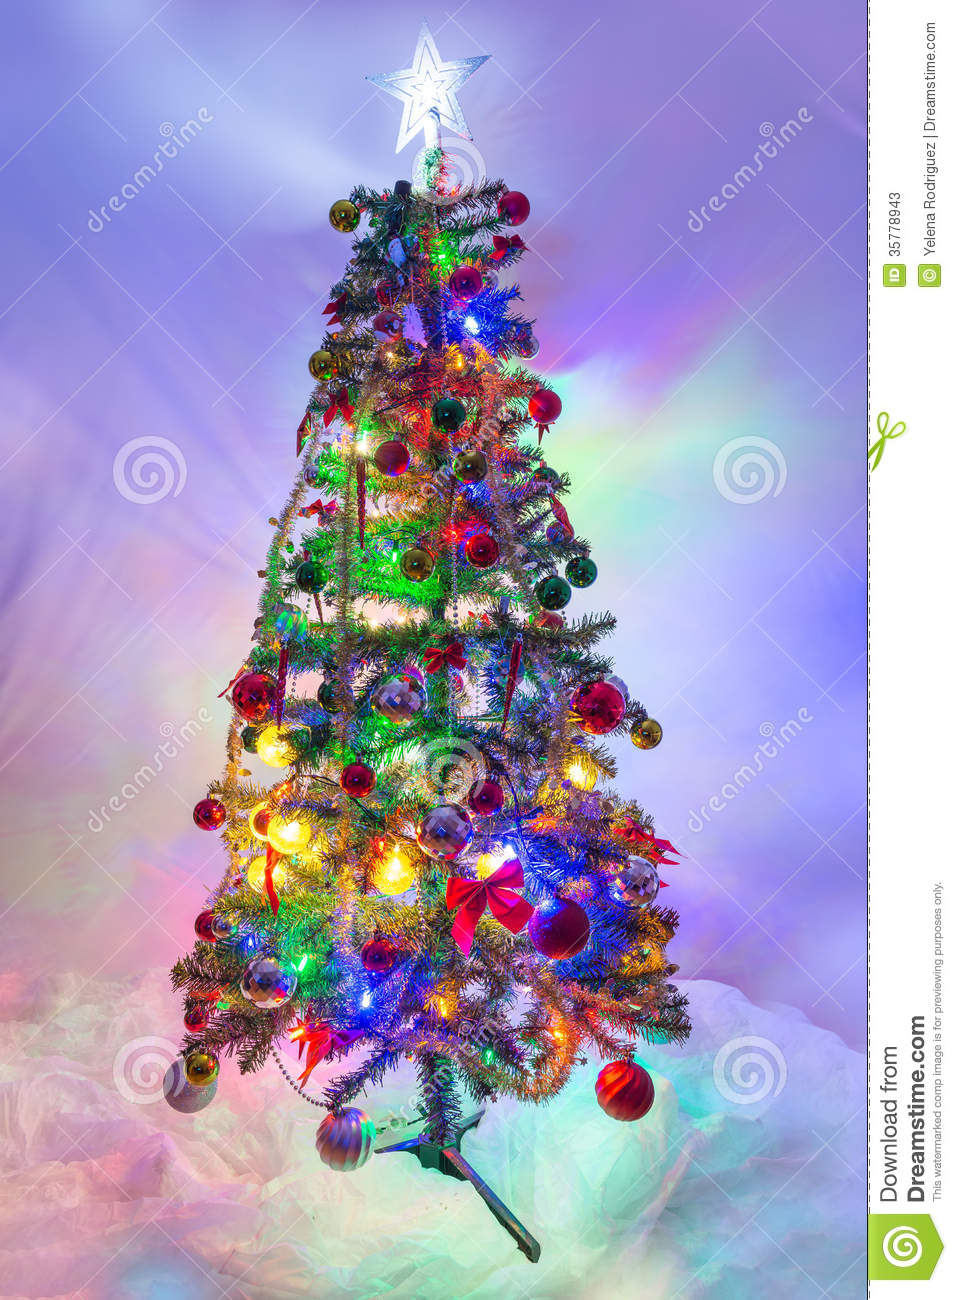 Christmas Tree With Lights On Stock Photos Image 35778943